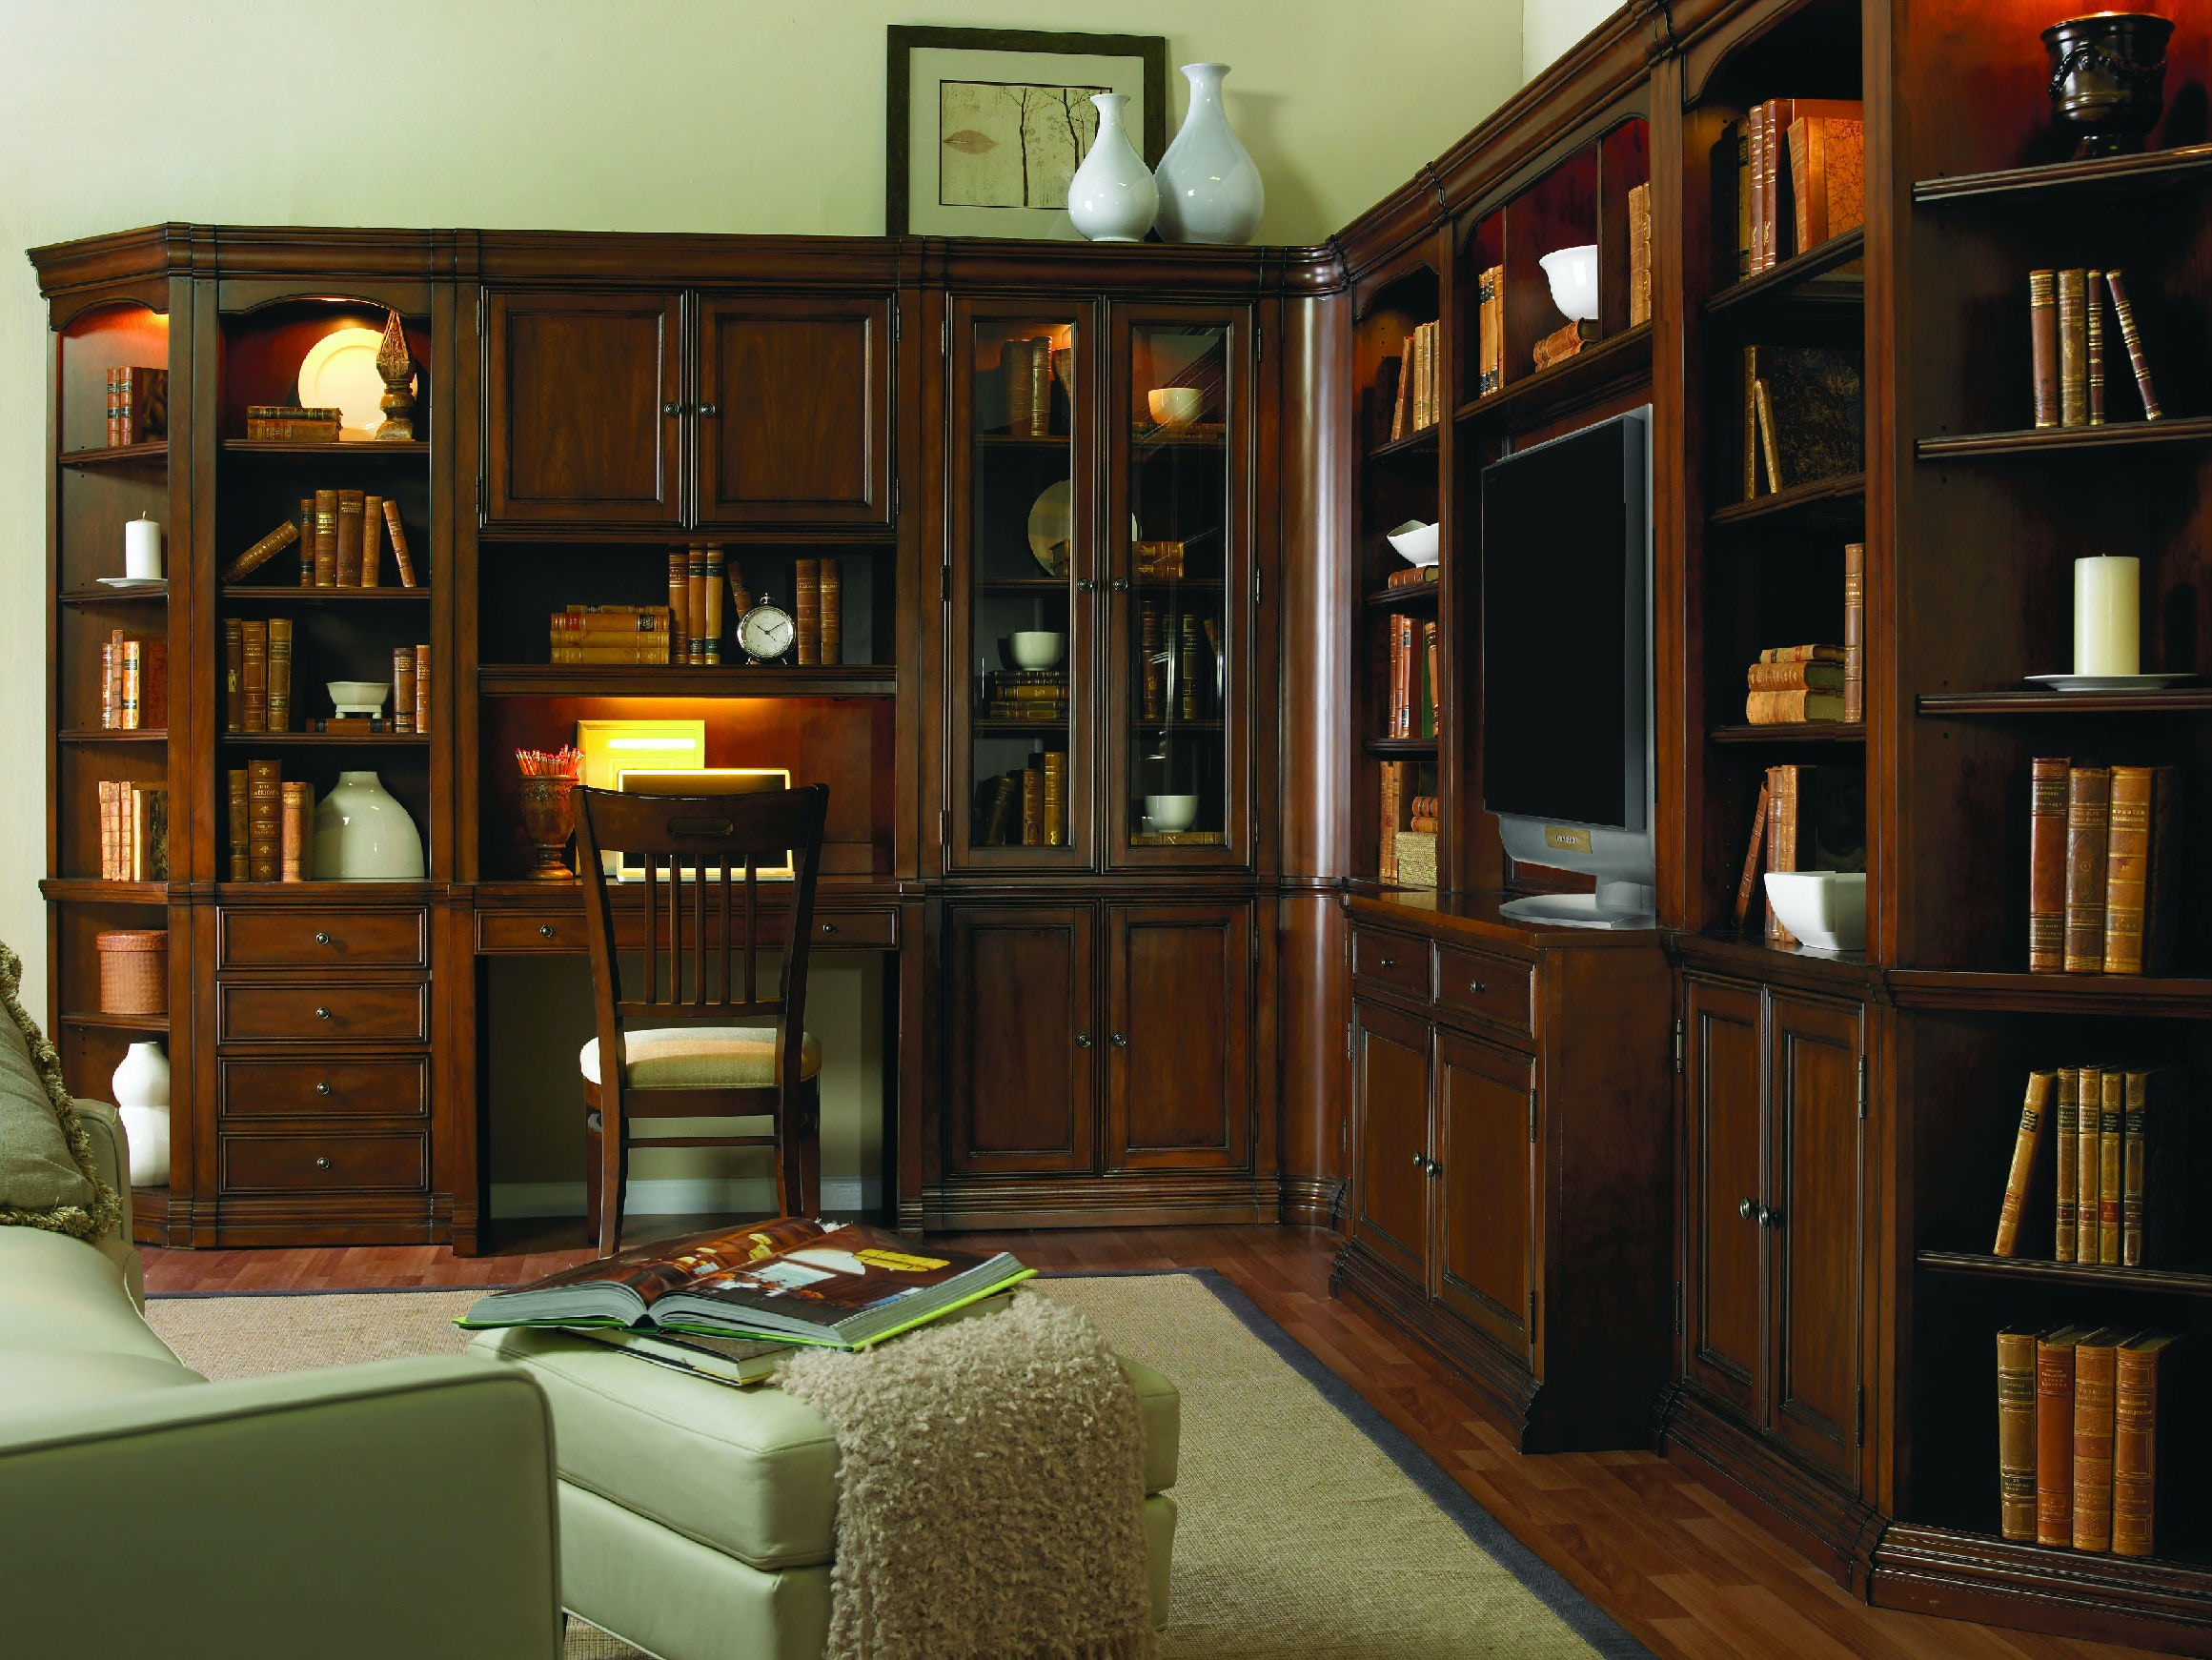 Hooker Furniture Home fice Cherry Creek Wall End Unit L R 258 70 450